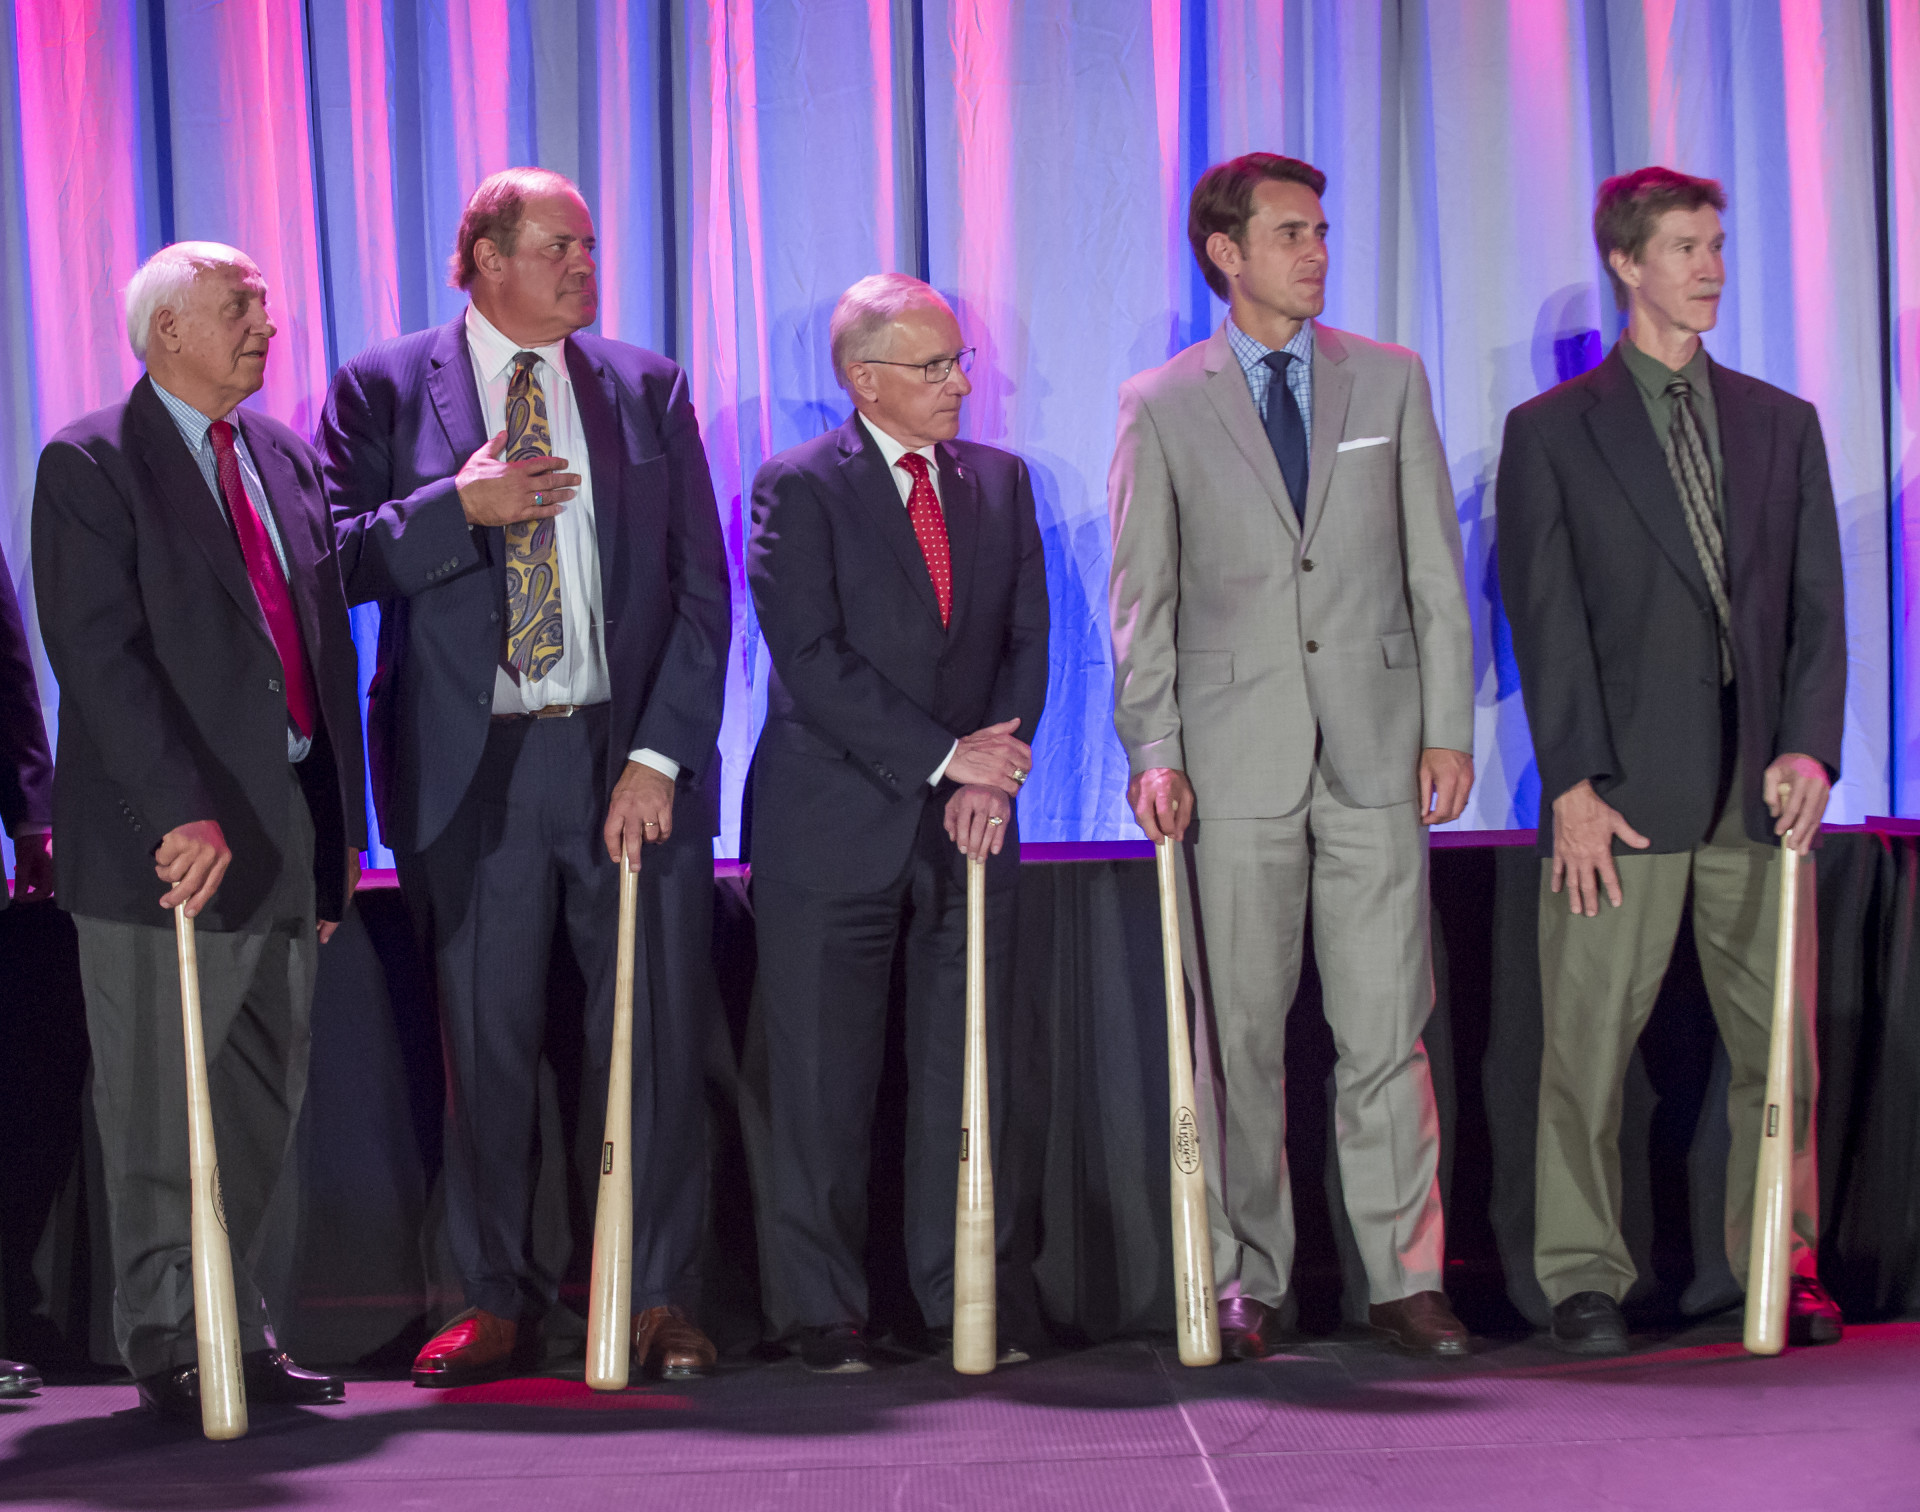 From left, 2016 Hall of Fame inductees Bill Packer and Chris Berman, with 3-time National Sportscaster of the Year Mike Emrick, 2-time National Sportswriter of the Year Tom Verducci, and 2016 Hall of fame inductee Gary Smith